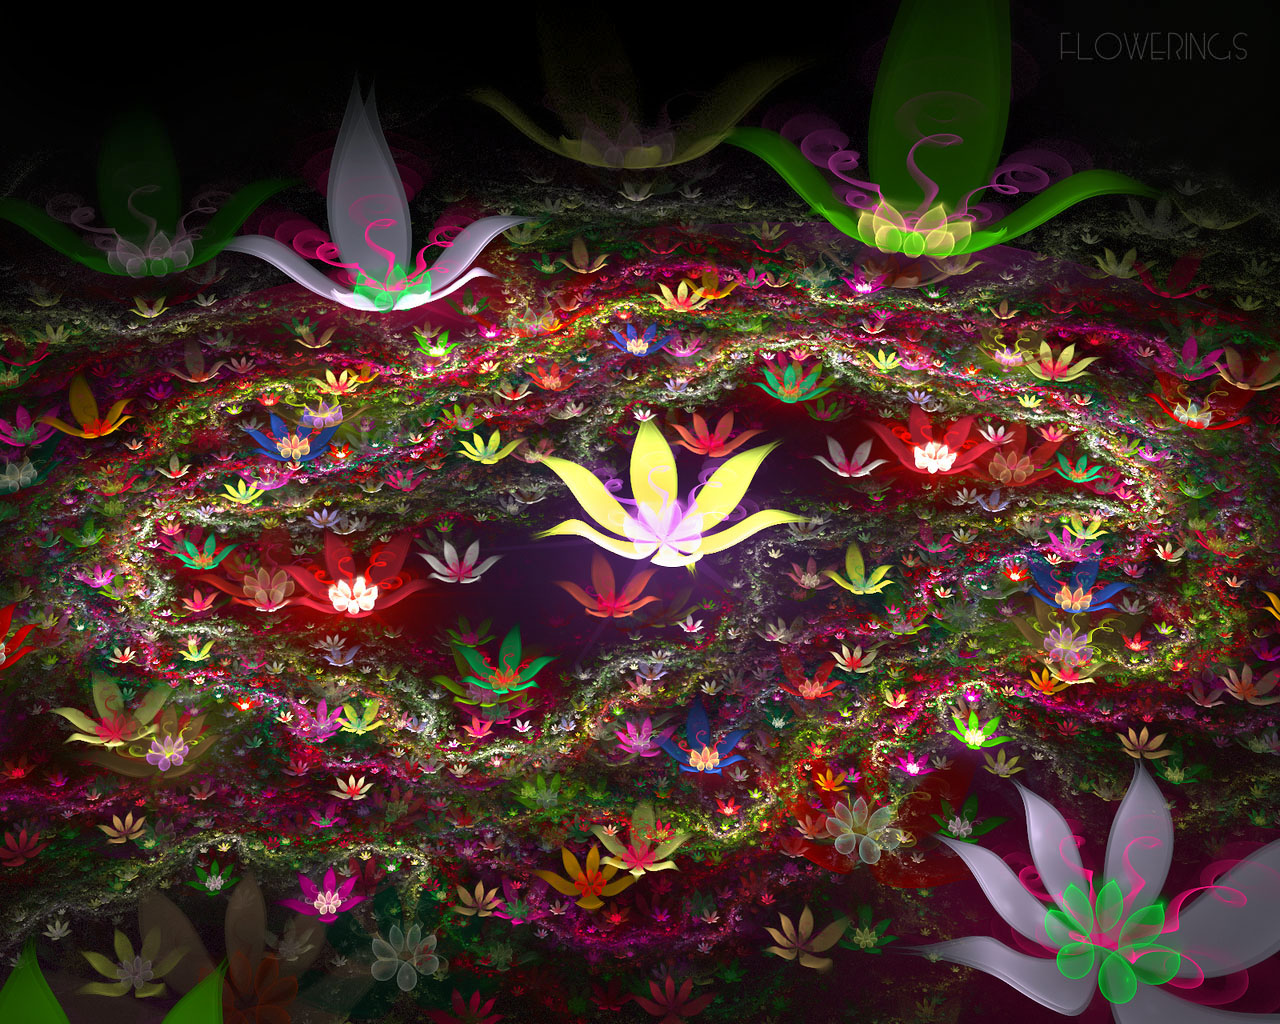 D fantasy abstract flowers 721 - 3D fantasy abstract flowers